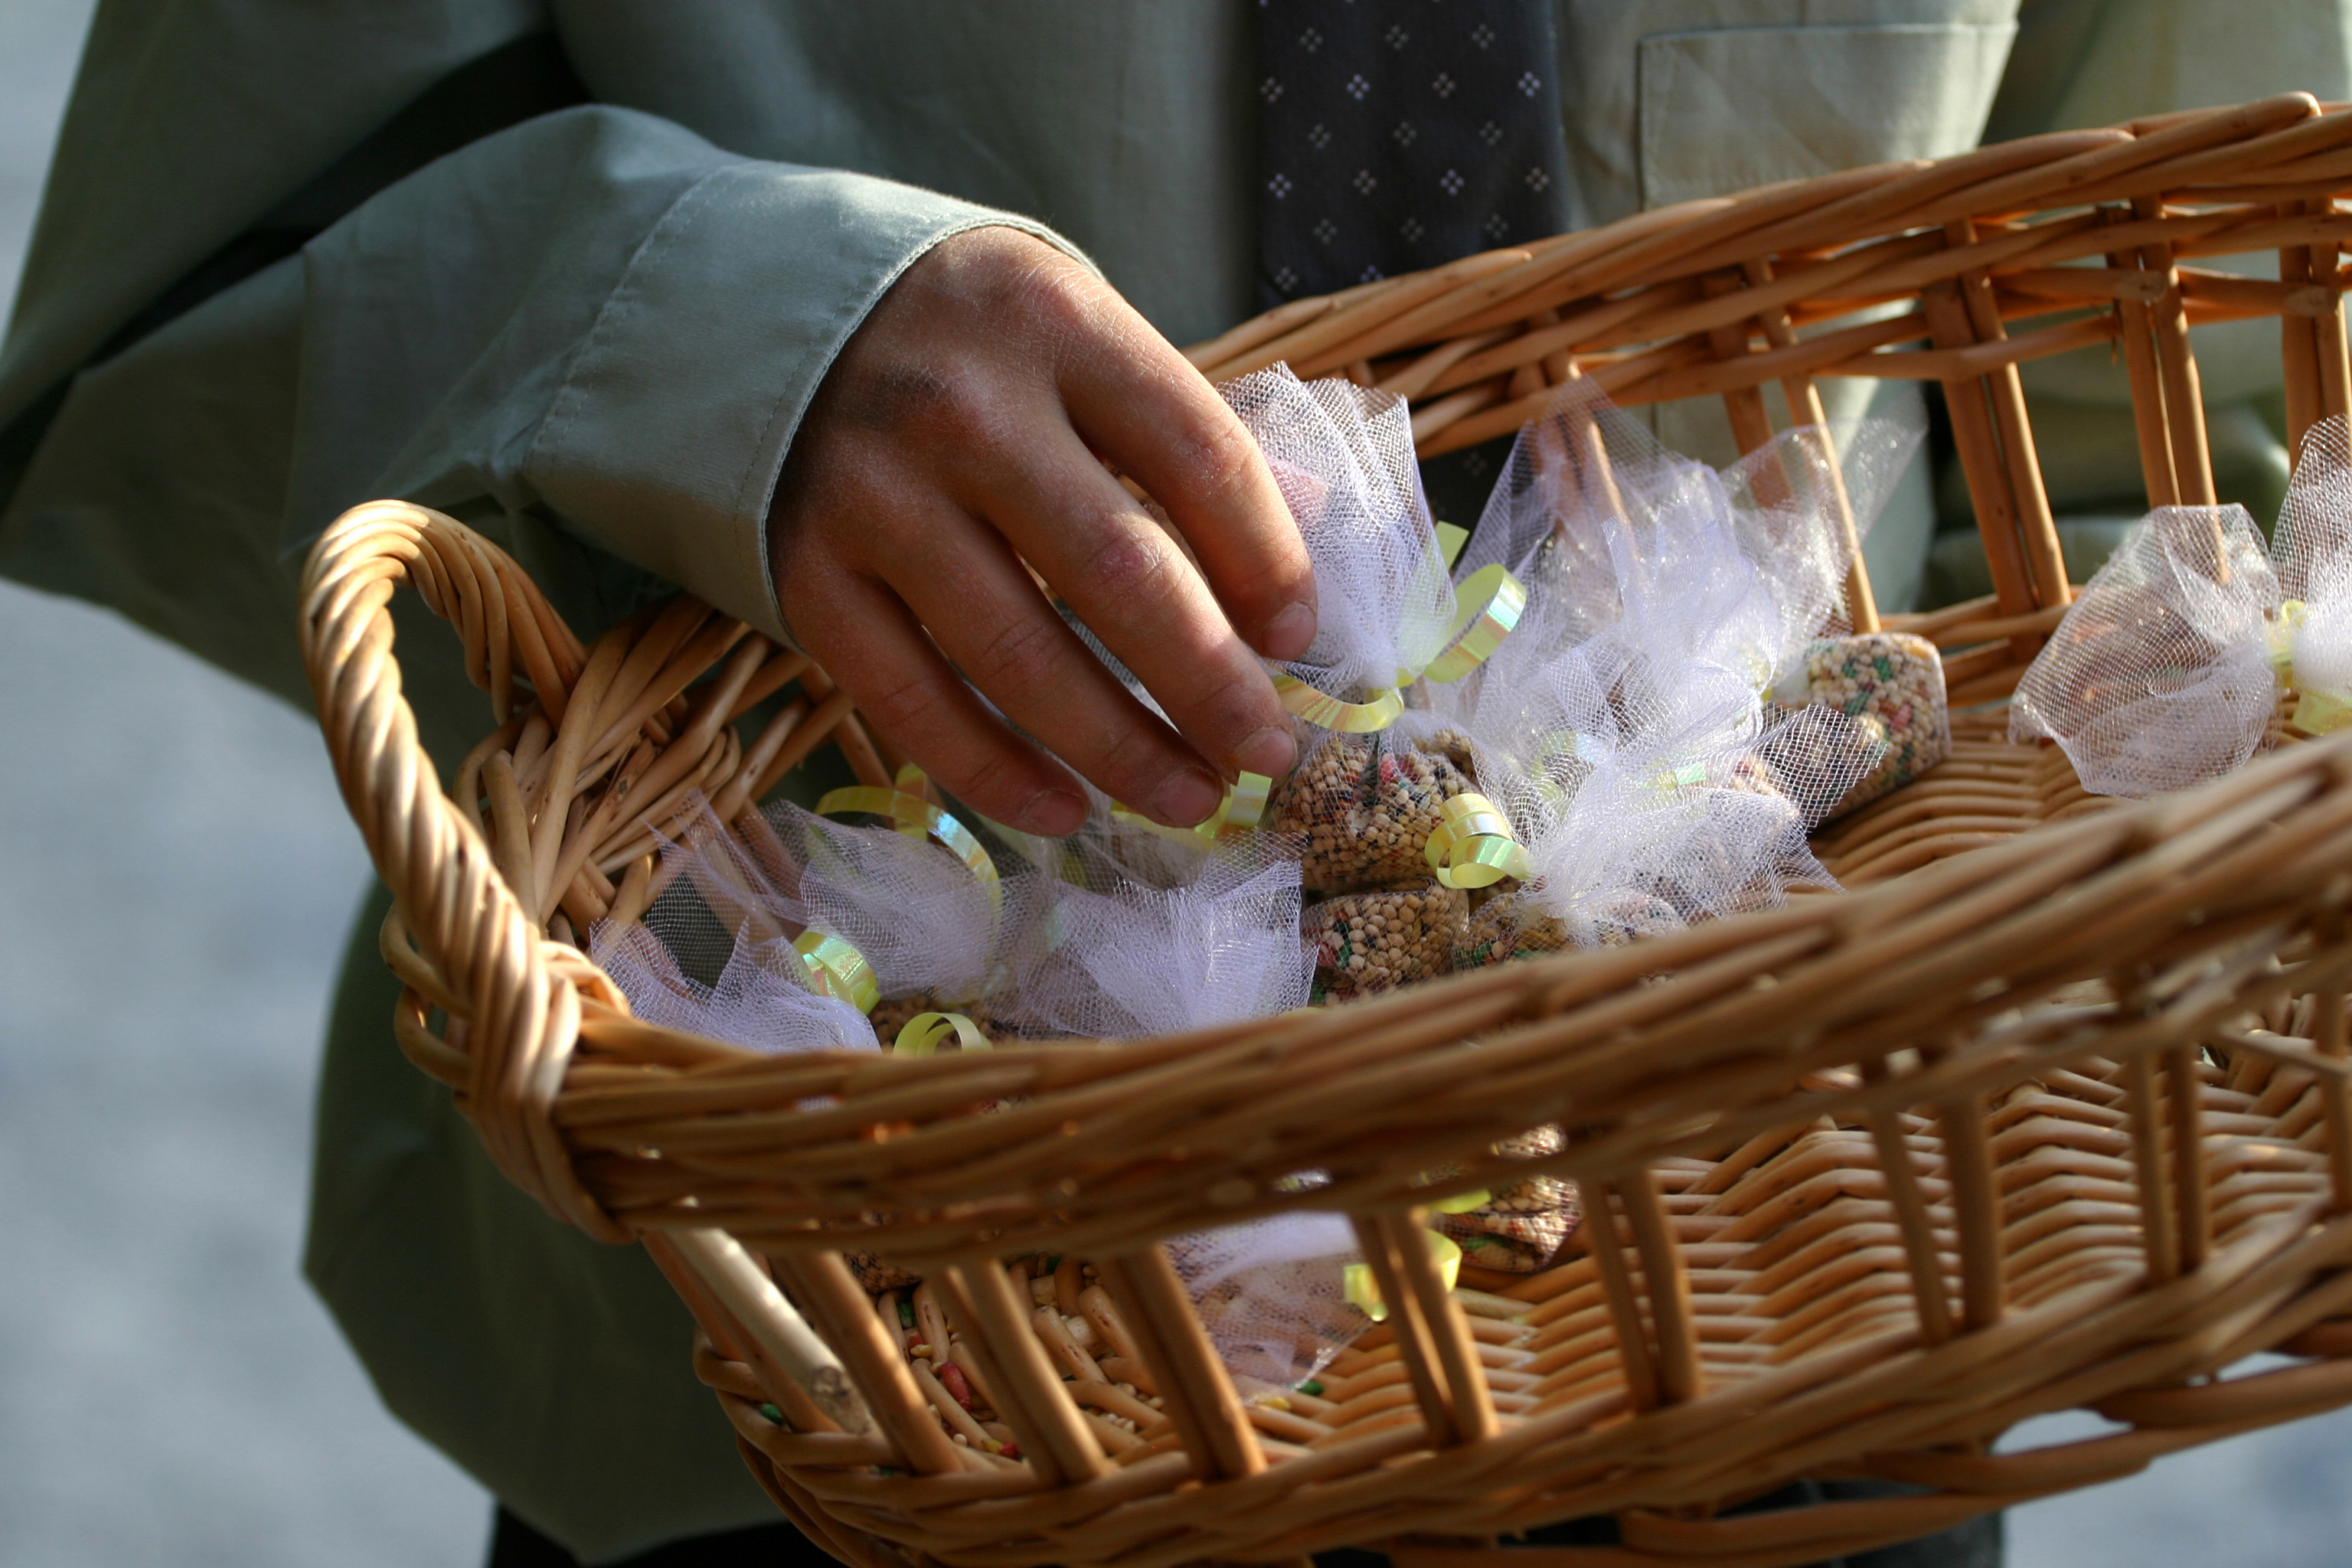 wedding send off ideas wedding send off ideas Some guests might even appreciate the symbolism of sending the lovebirds off on their way